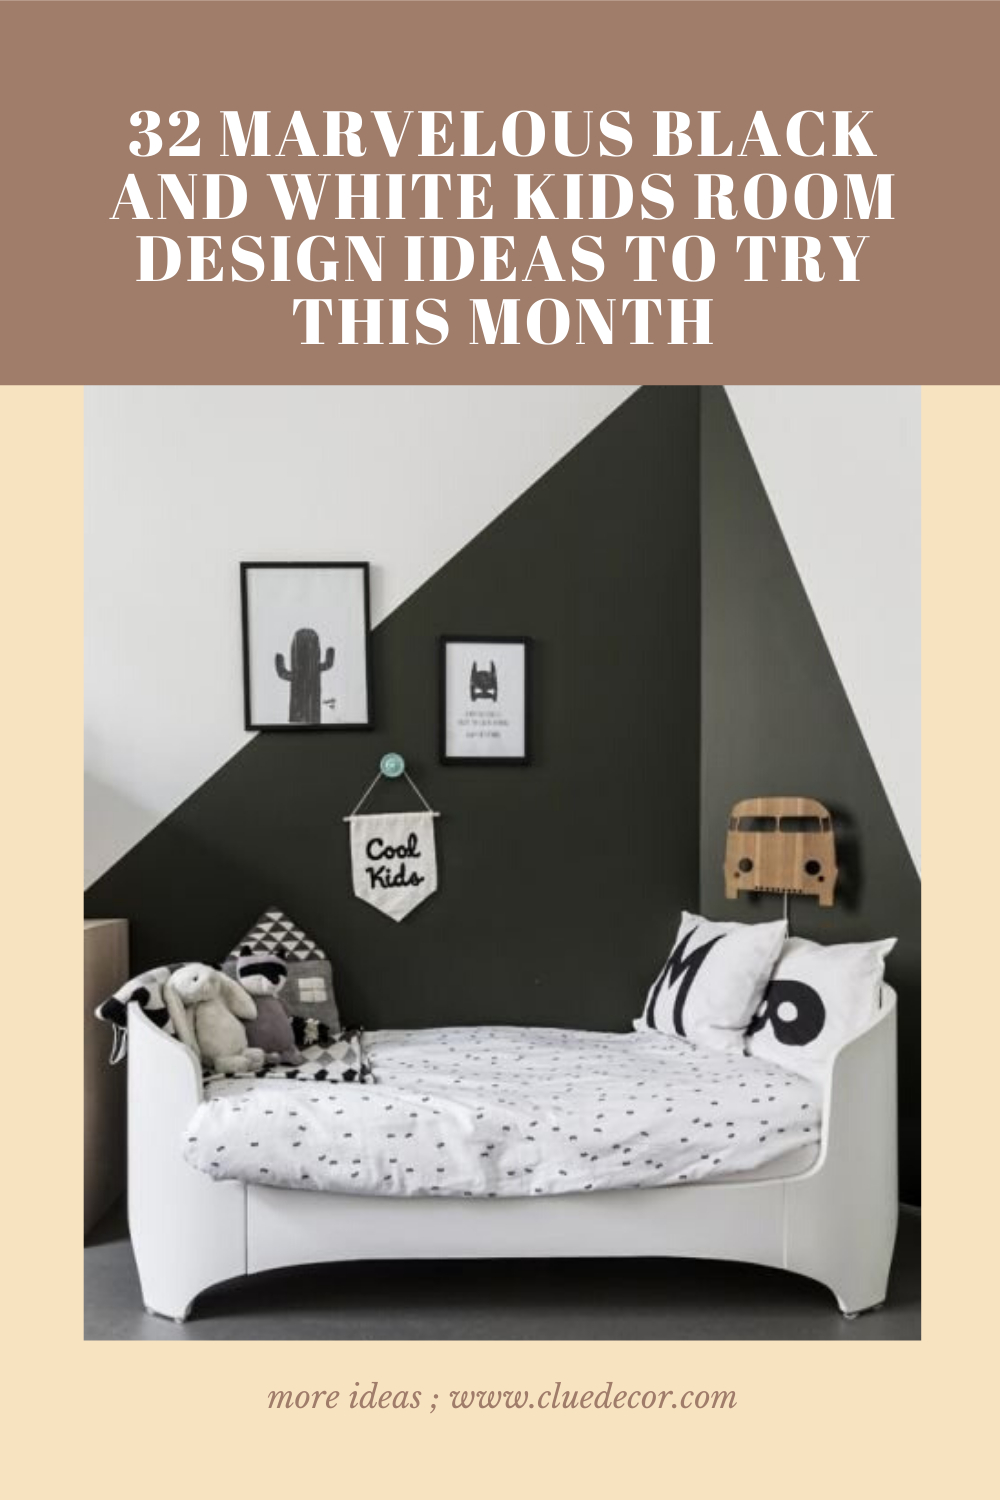 32 Marvelous Black And White Kids Room Design Ideas To Try This Month Cluedecor